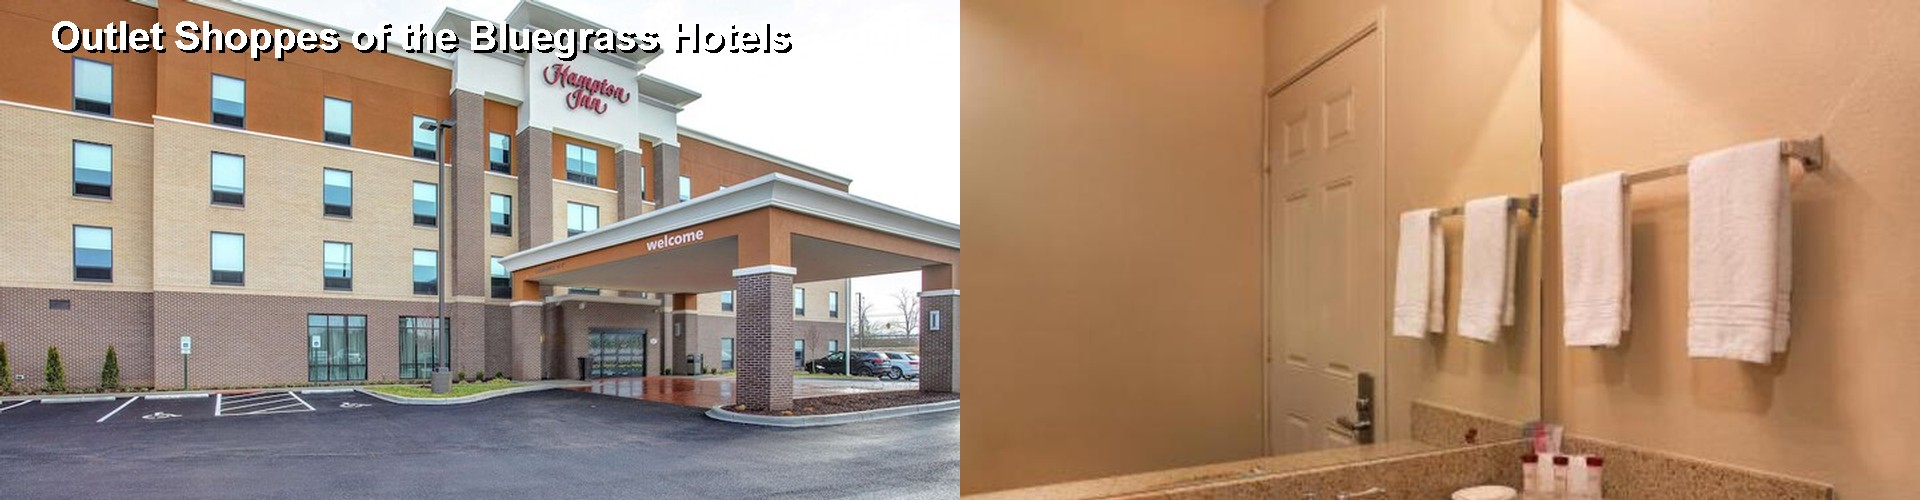 5 Best Hotels near Outlet Shoppes of the Bluegrass